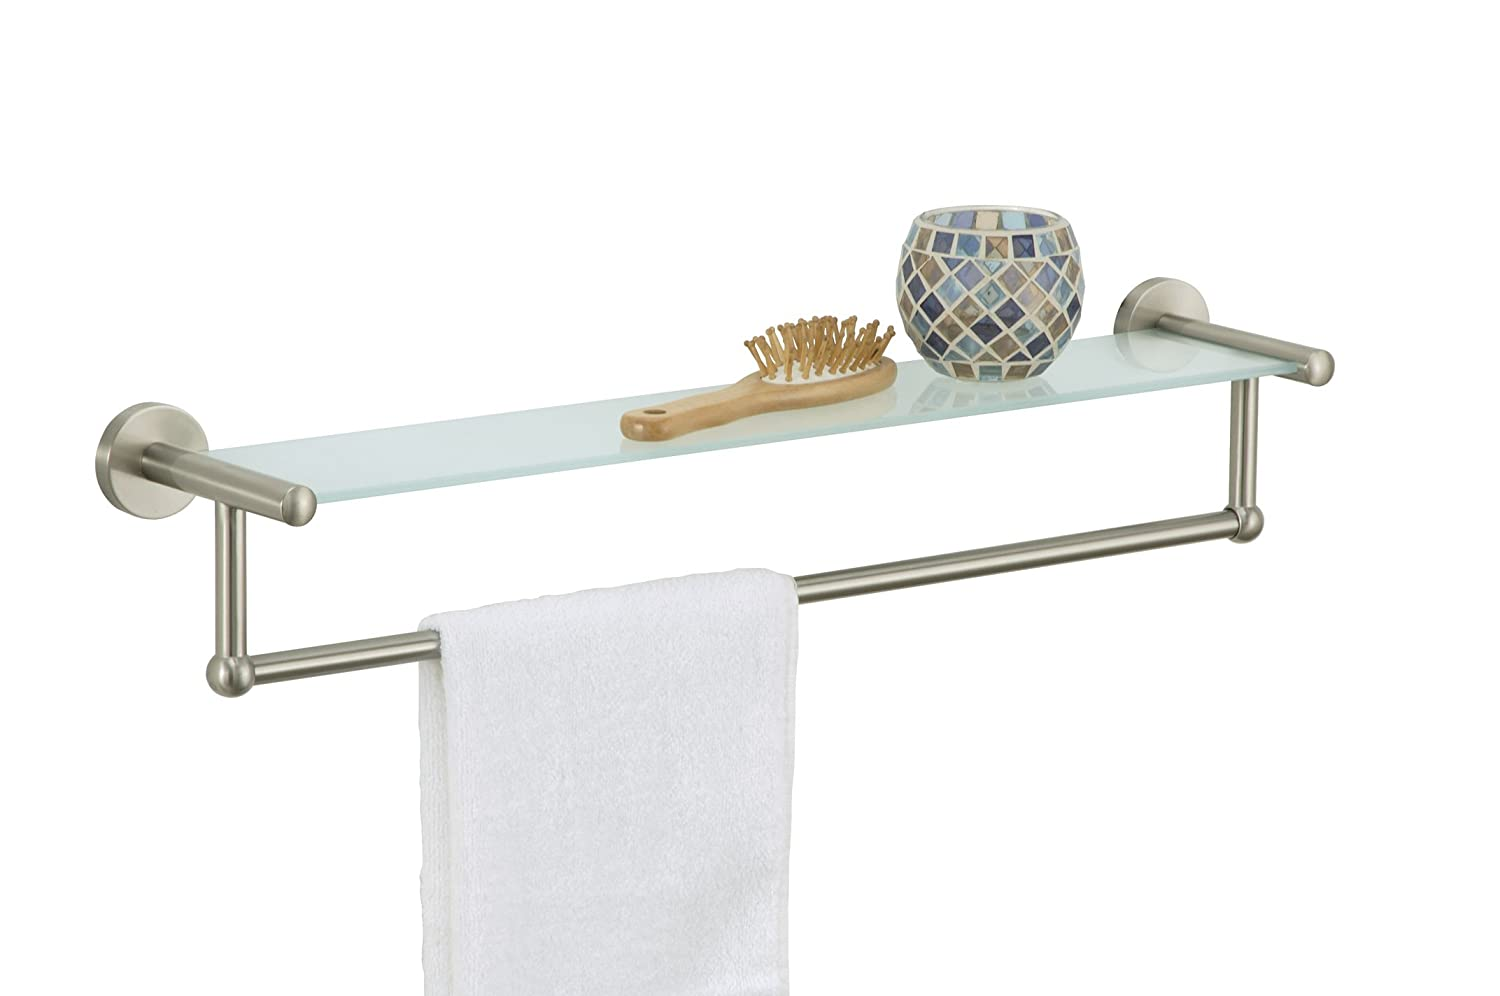 Organize It All Glass Shelf with Towel Bar, Satin Nickel 16905W